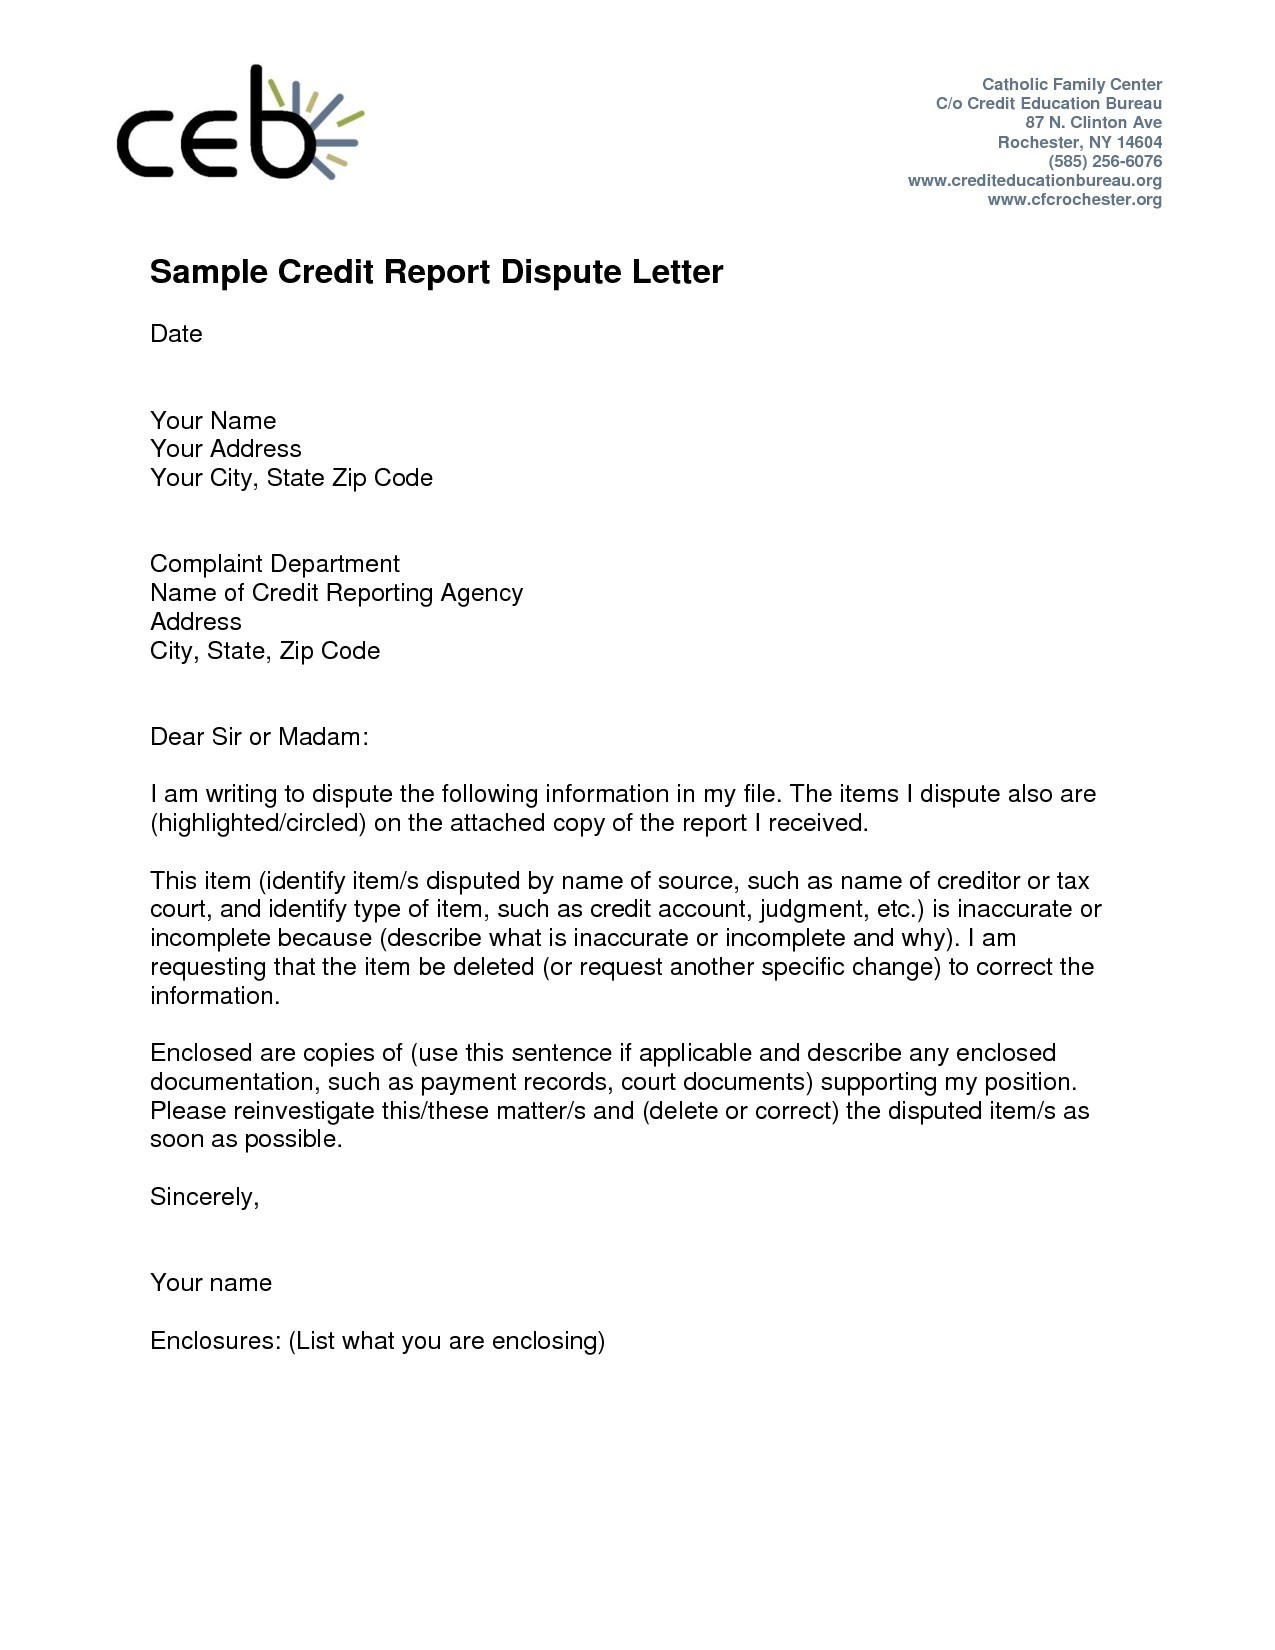 Credit Report Dispute Form Letter